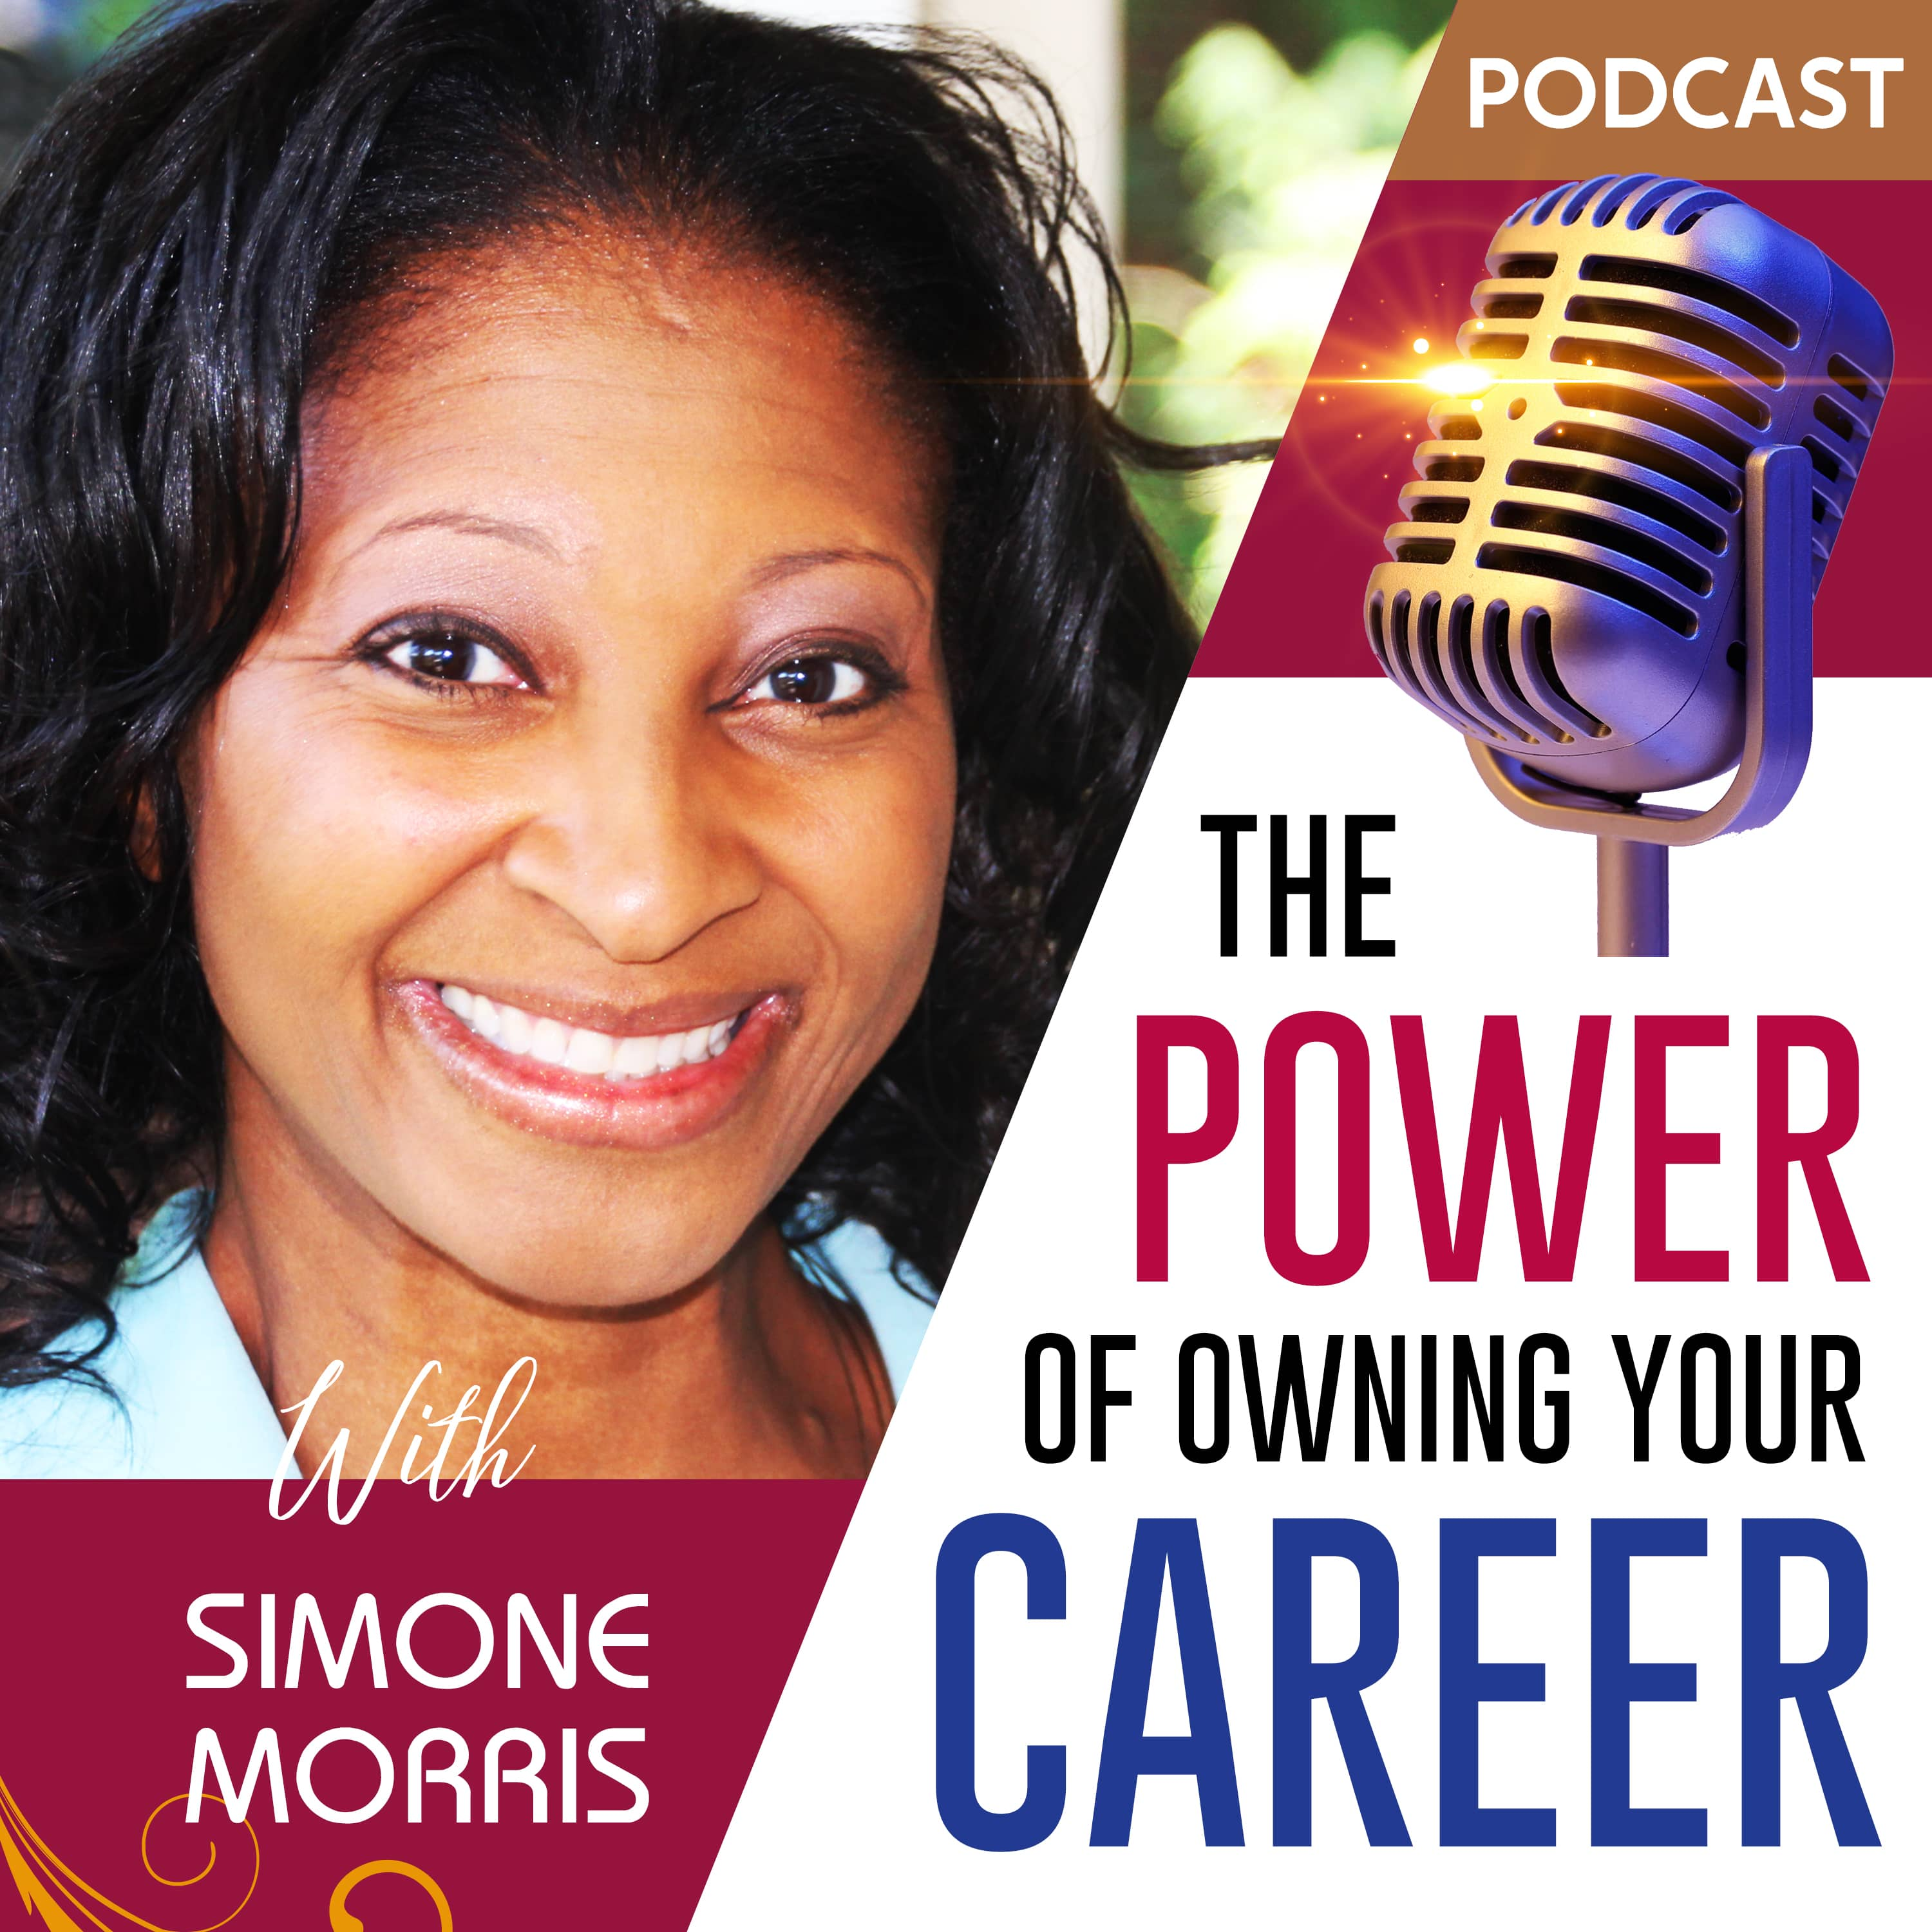 The Power of Owning Your Career Podcast show art